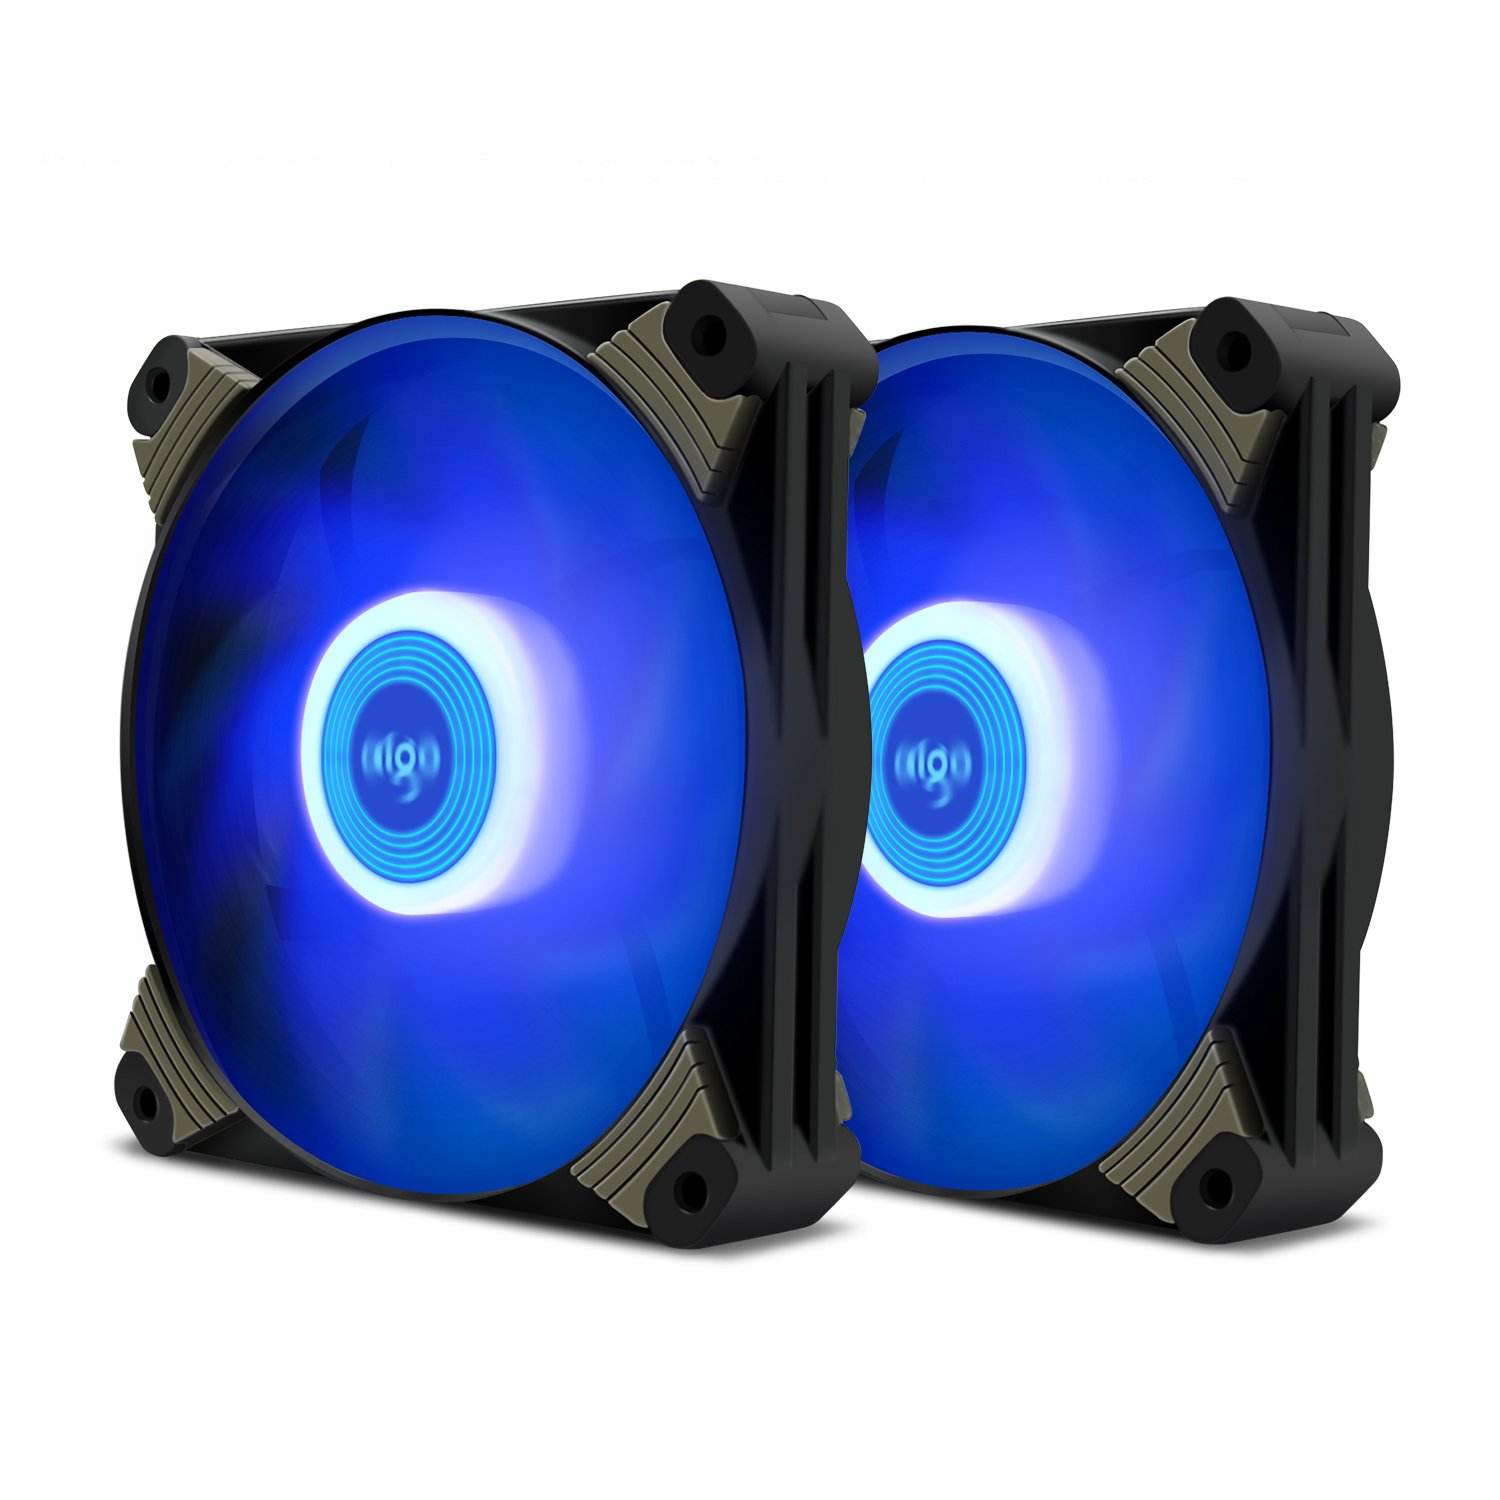 Aigo Icy-series X1 120mm LED Quiet Edition High Airflow Hybrid-Design Silent Fan for Computer Cases CPU Coolers and Radiators Ultra Quiet Computer PC Case Fan (2 Pack Blue)